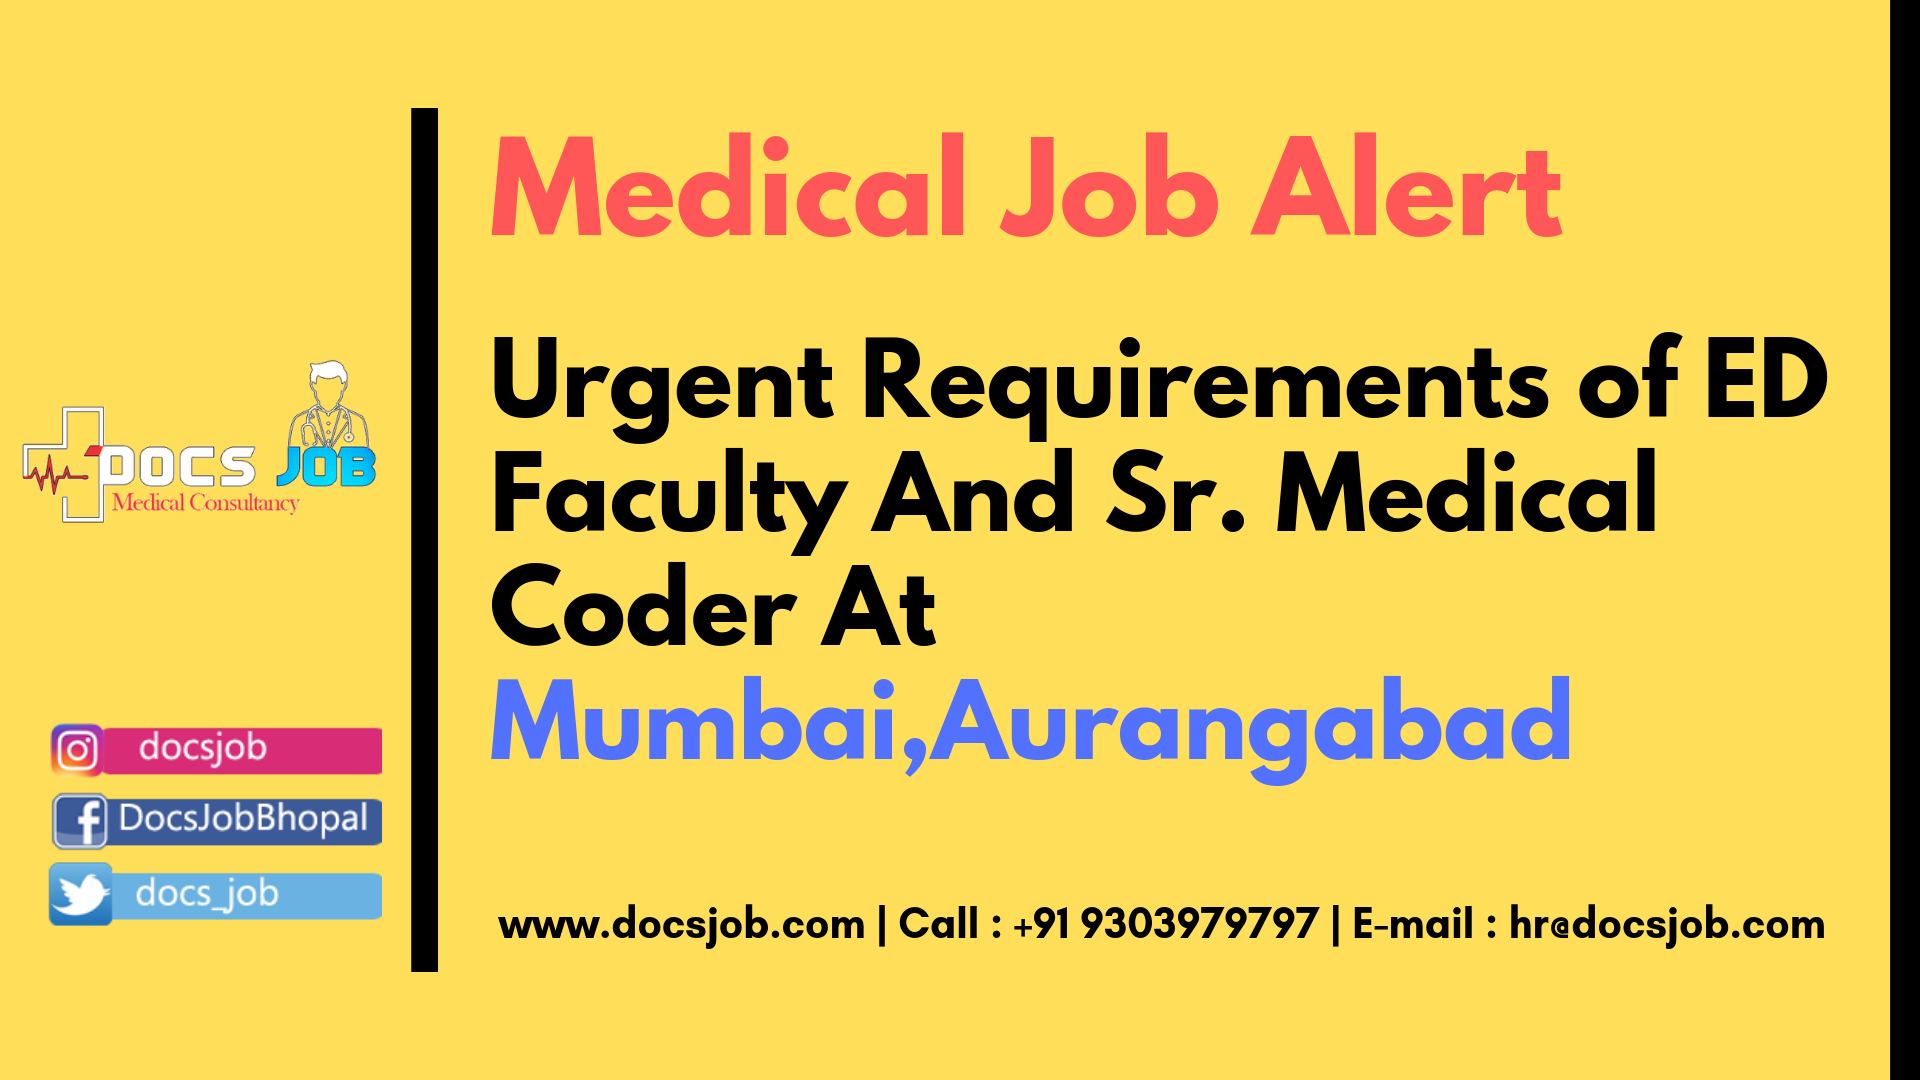 For More Detail or Contact Medical jobs, Medical coder